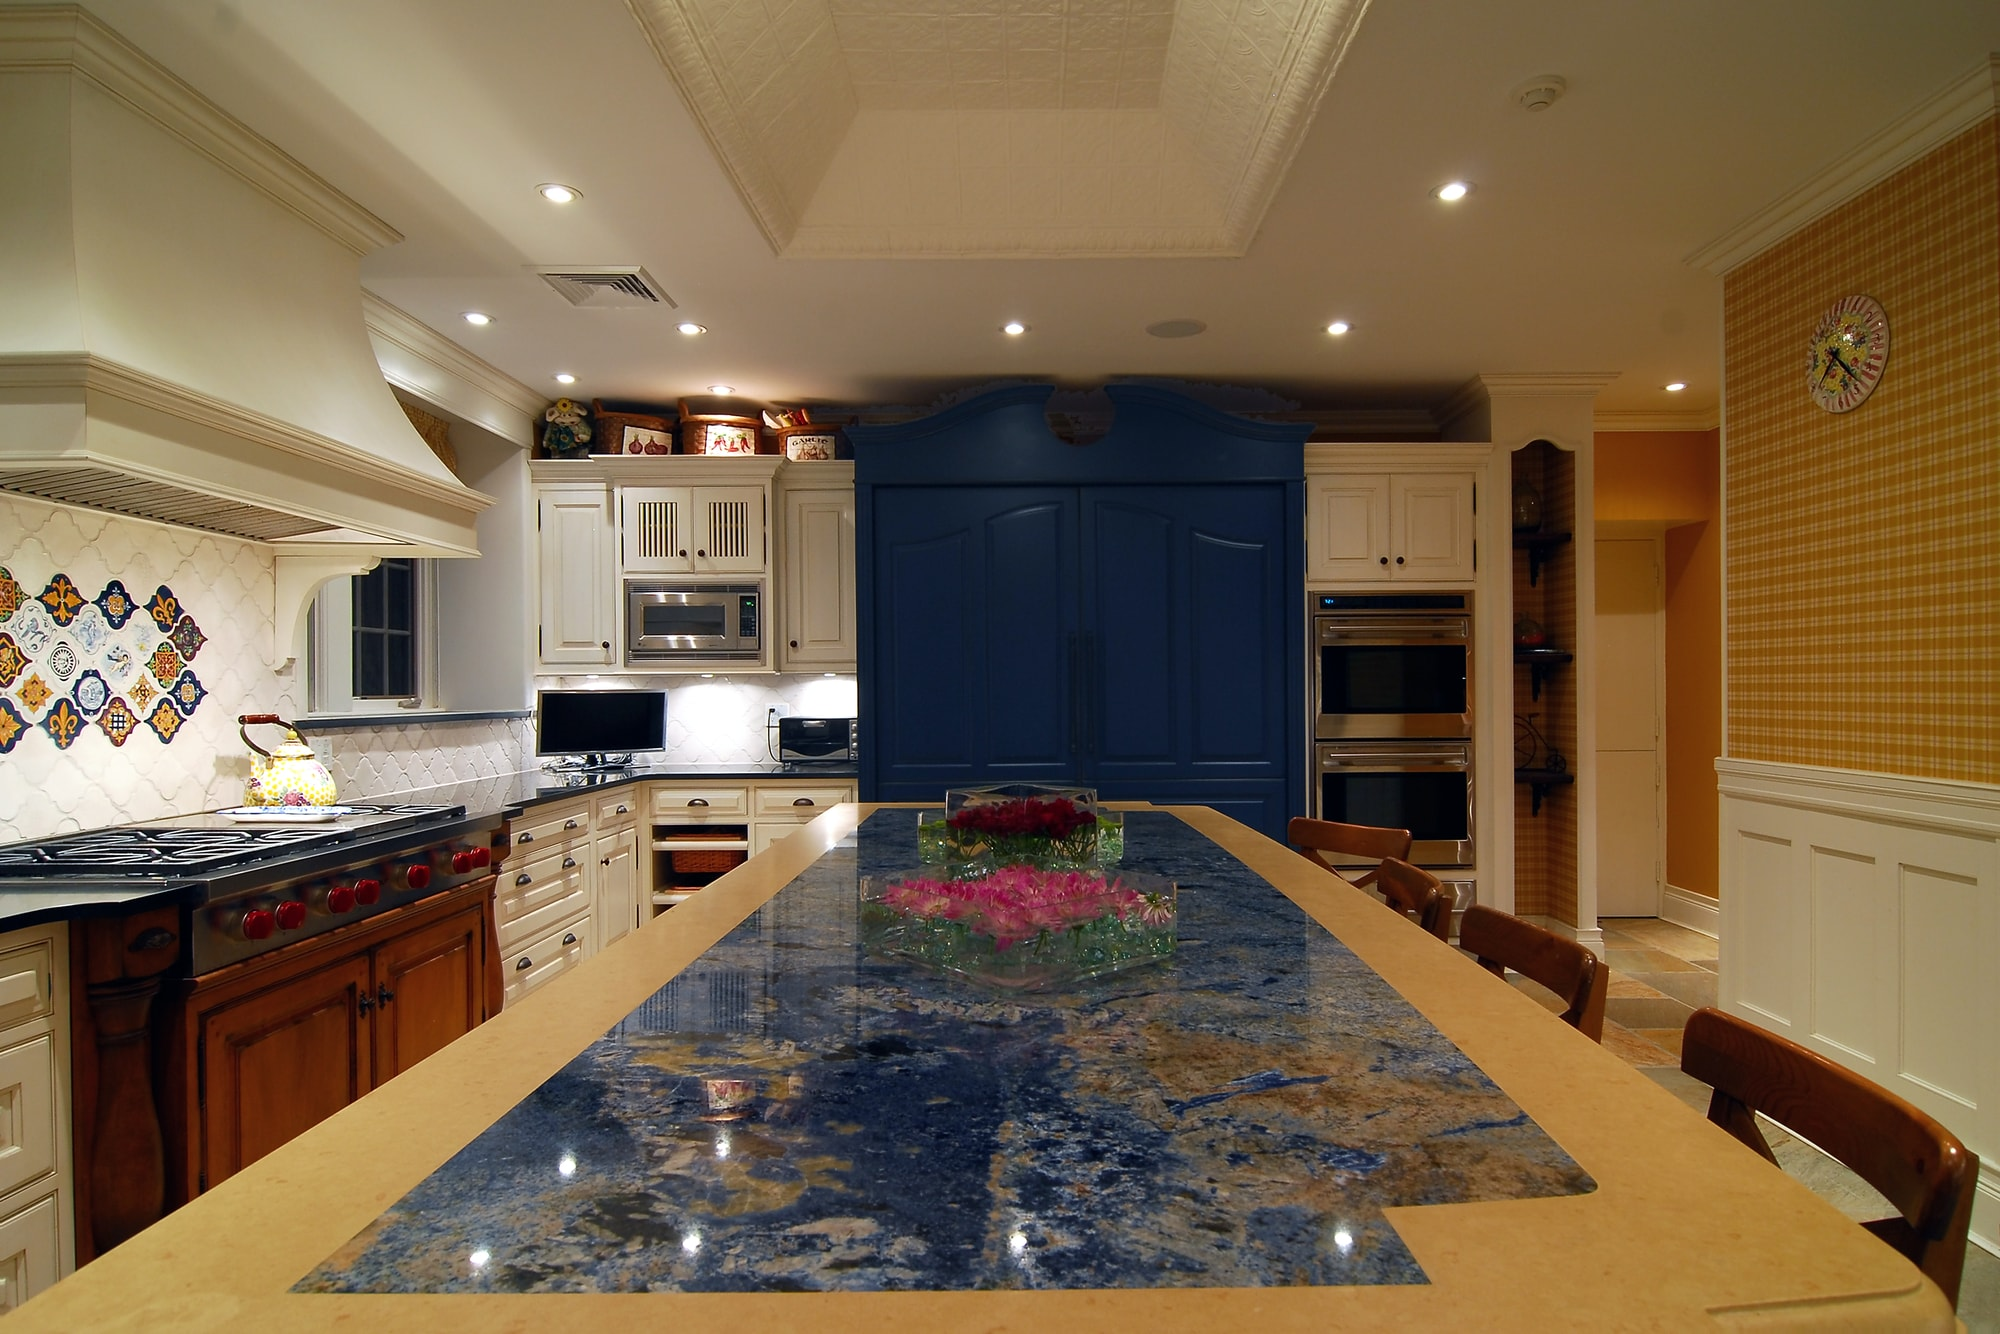 Traditional style kitchen with long center island